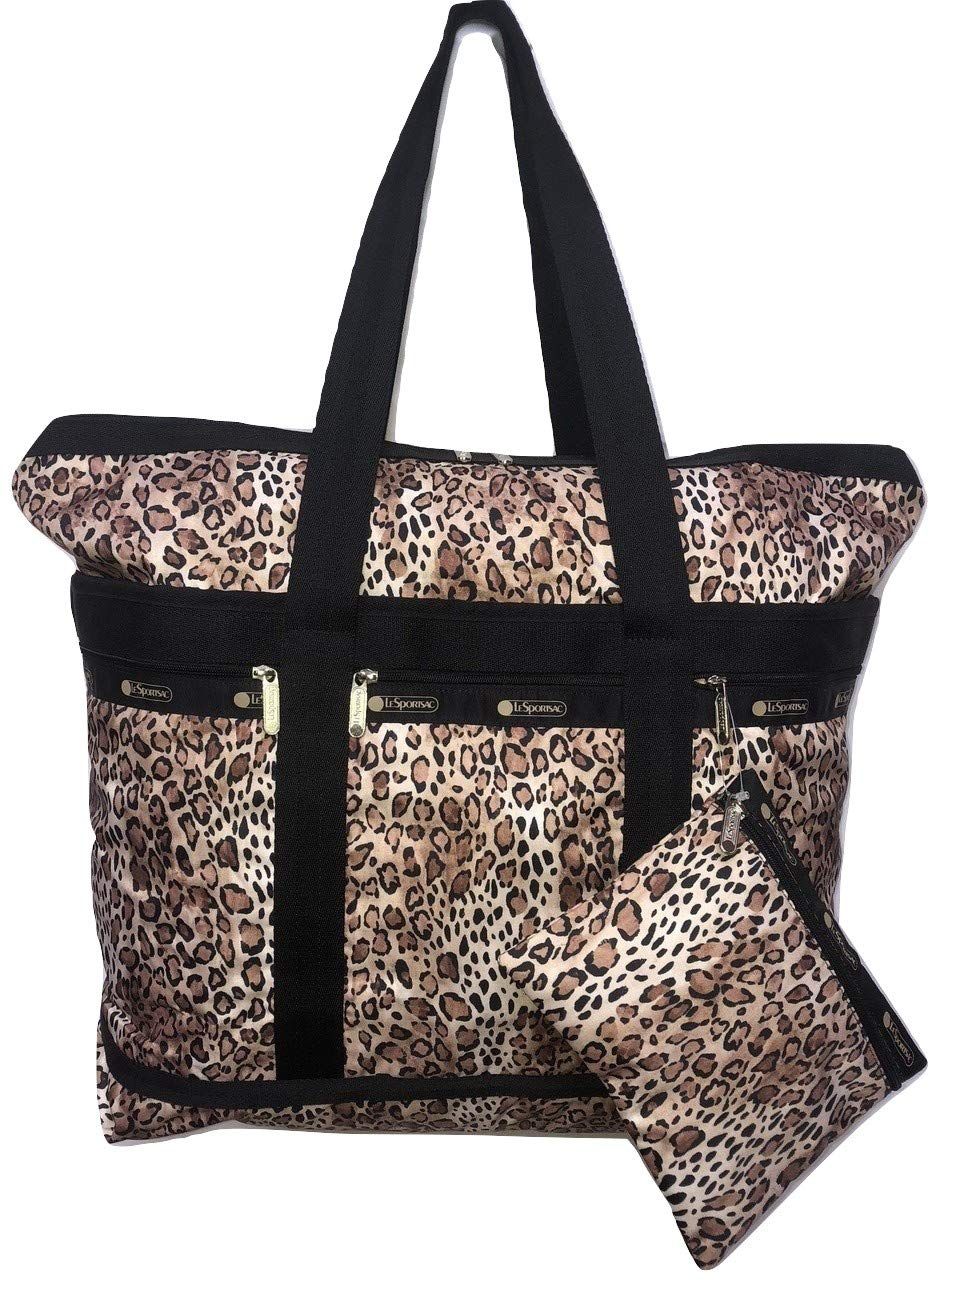 LeSportsac Ombre Cheetah Travel Tote + Matching Cosmetic Bag (metallic trim)